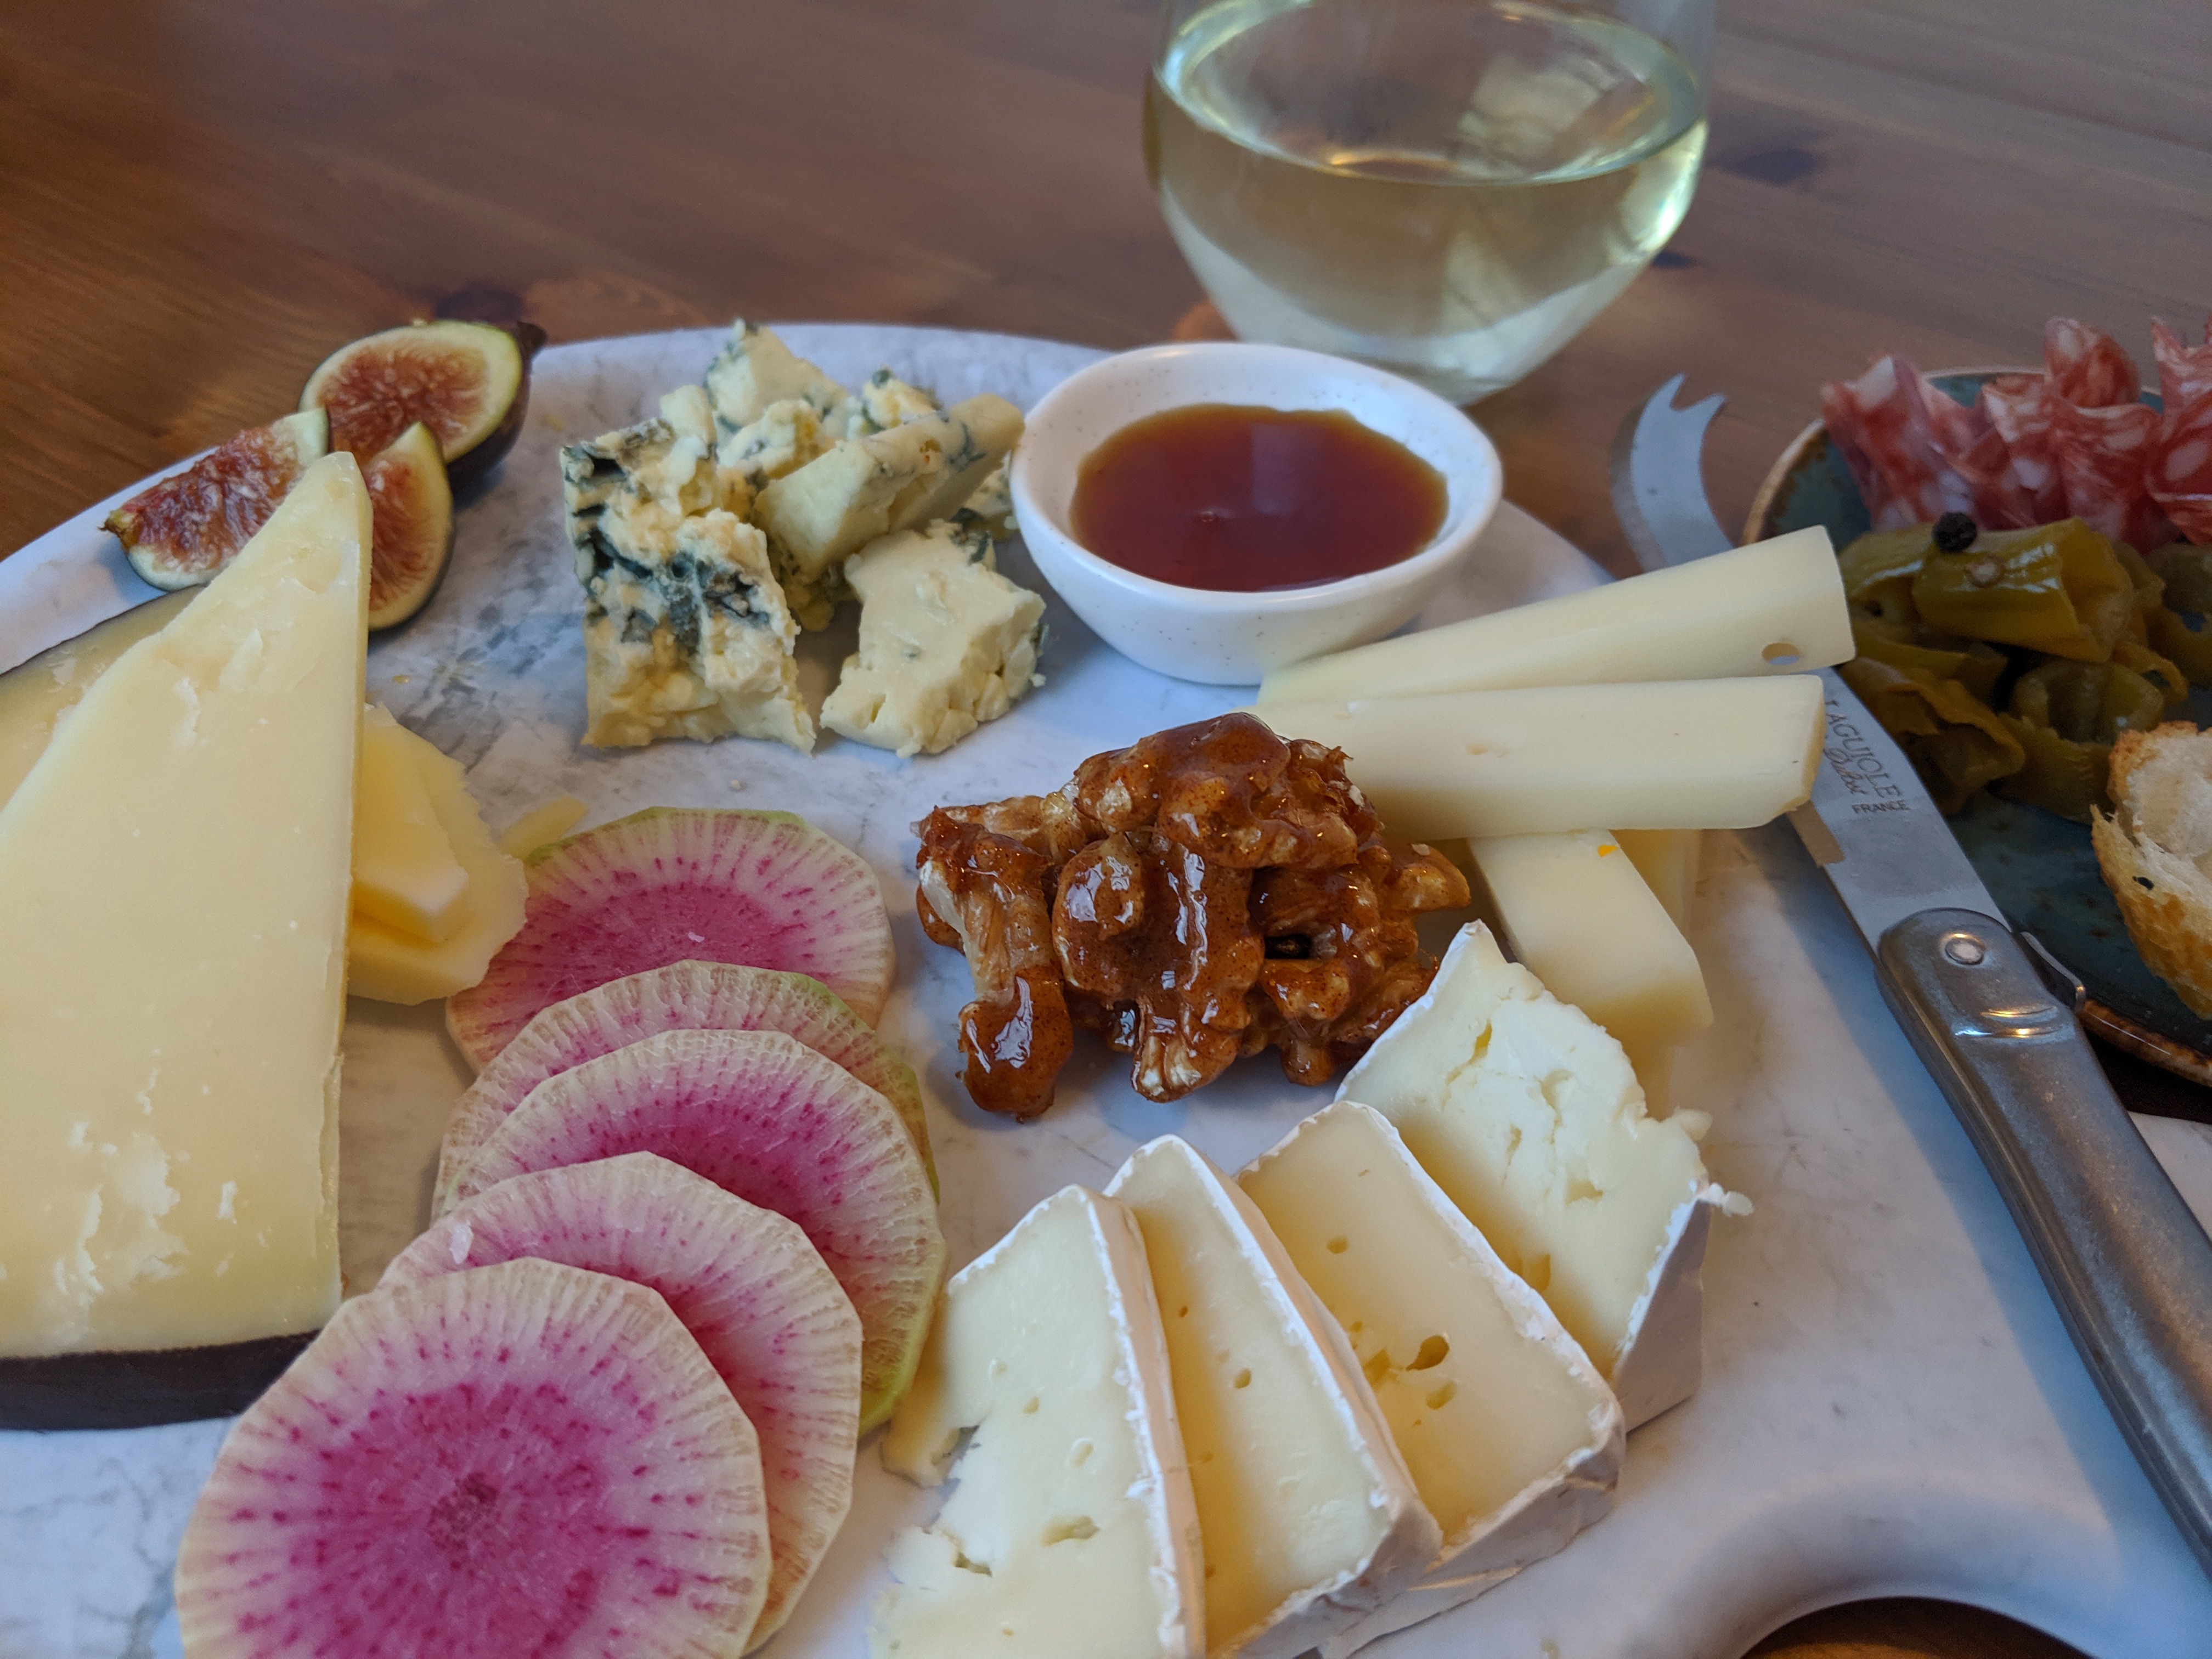 A cheese plate with piles of different kinds of cheeses, slices of watermelon radish, nut brittle, and more.